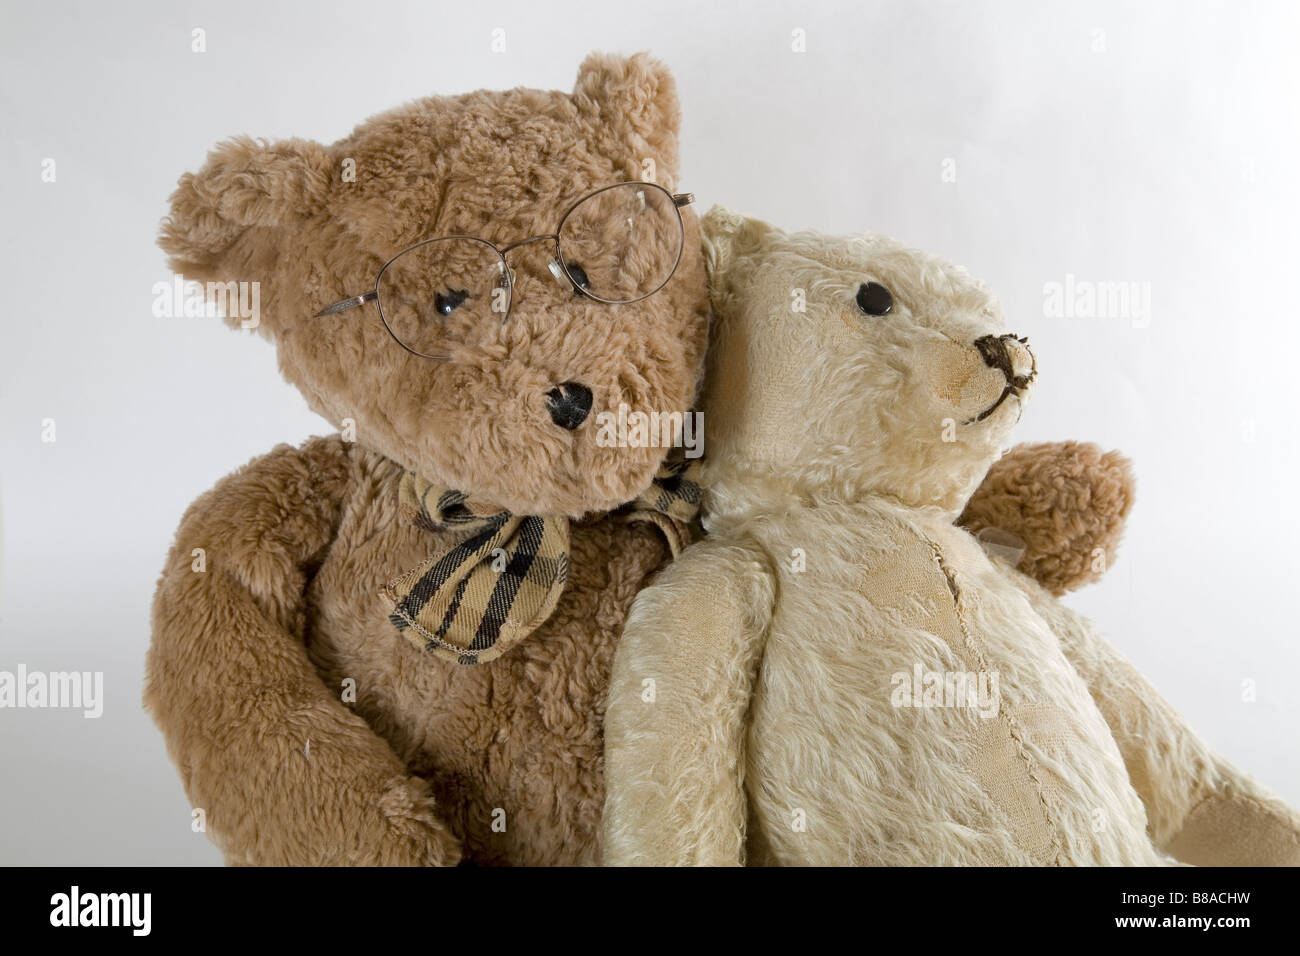 Two old teddy bears get together for Old Times Sake and to talk about their rips and tears - Stock Image